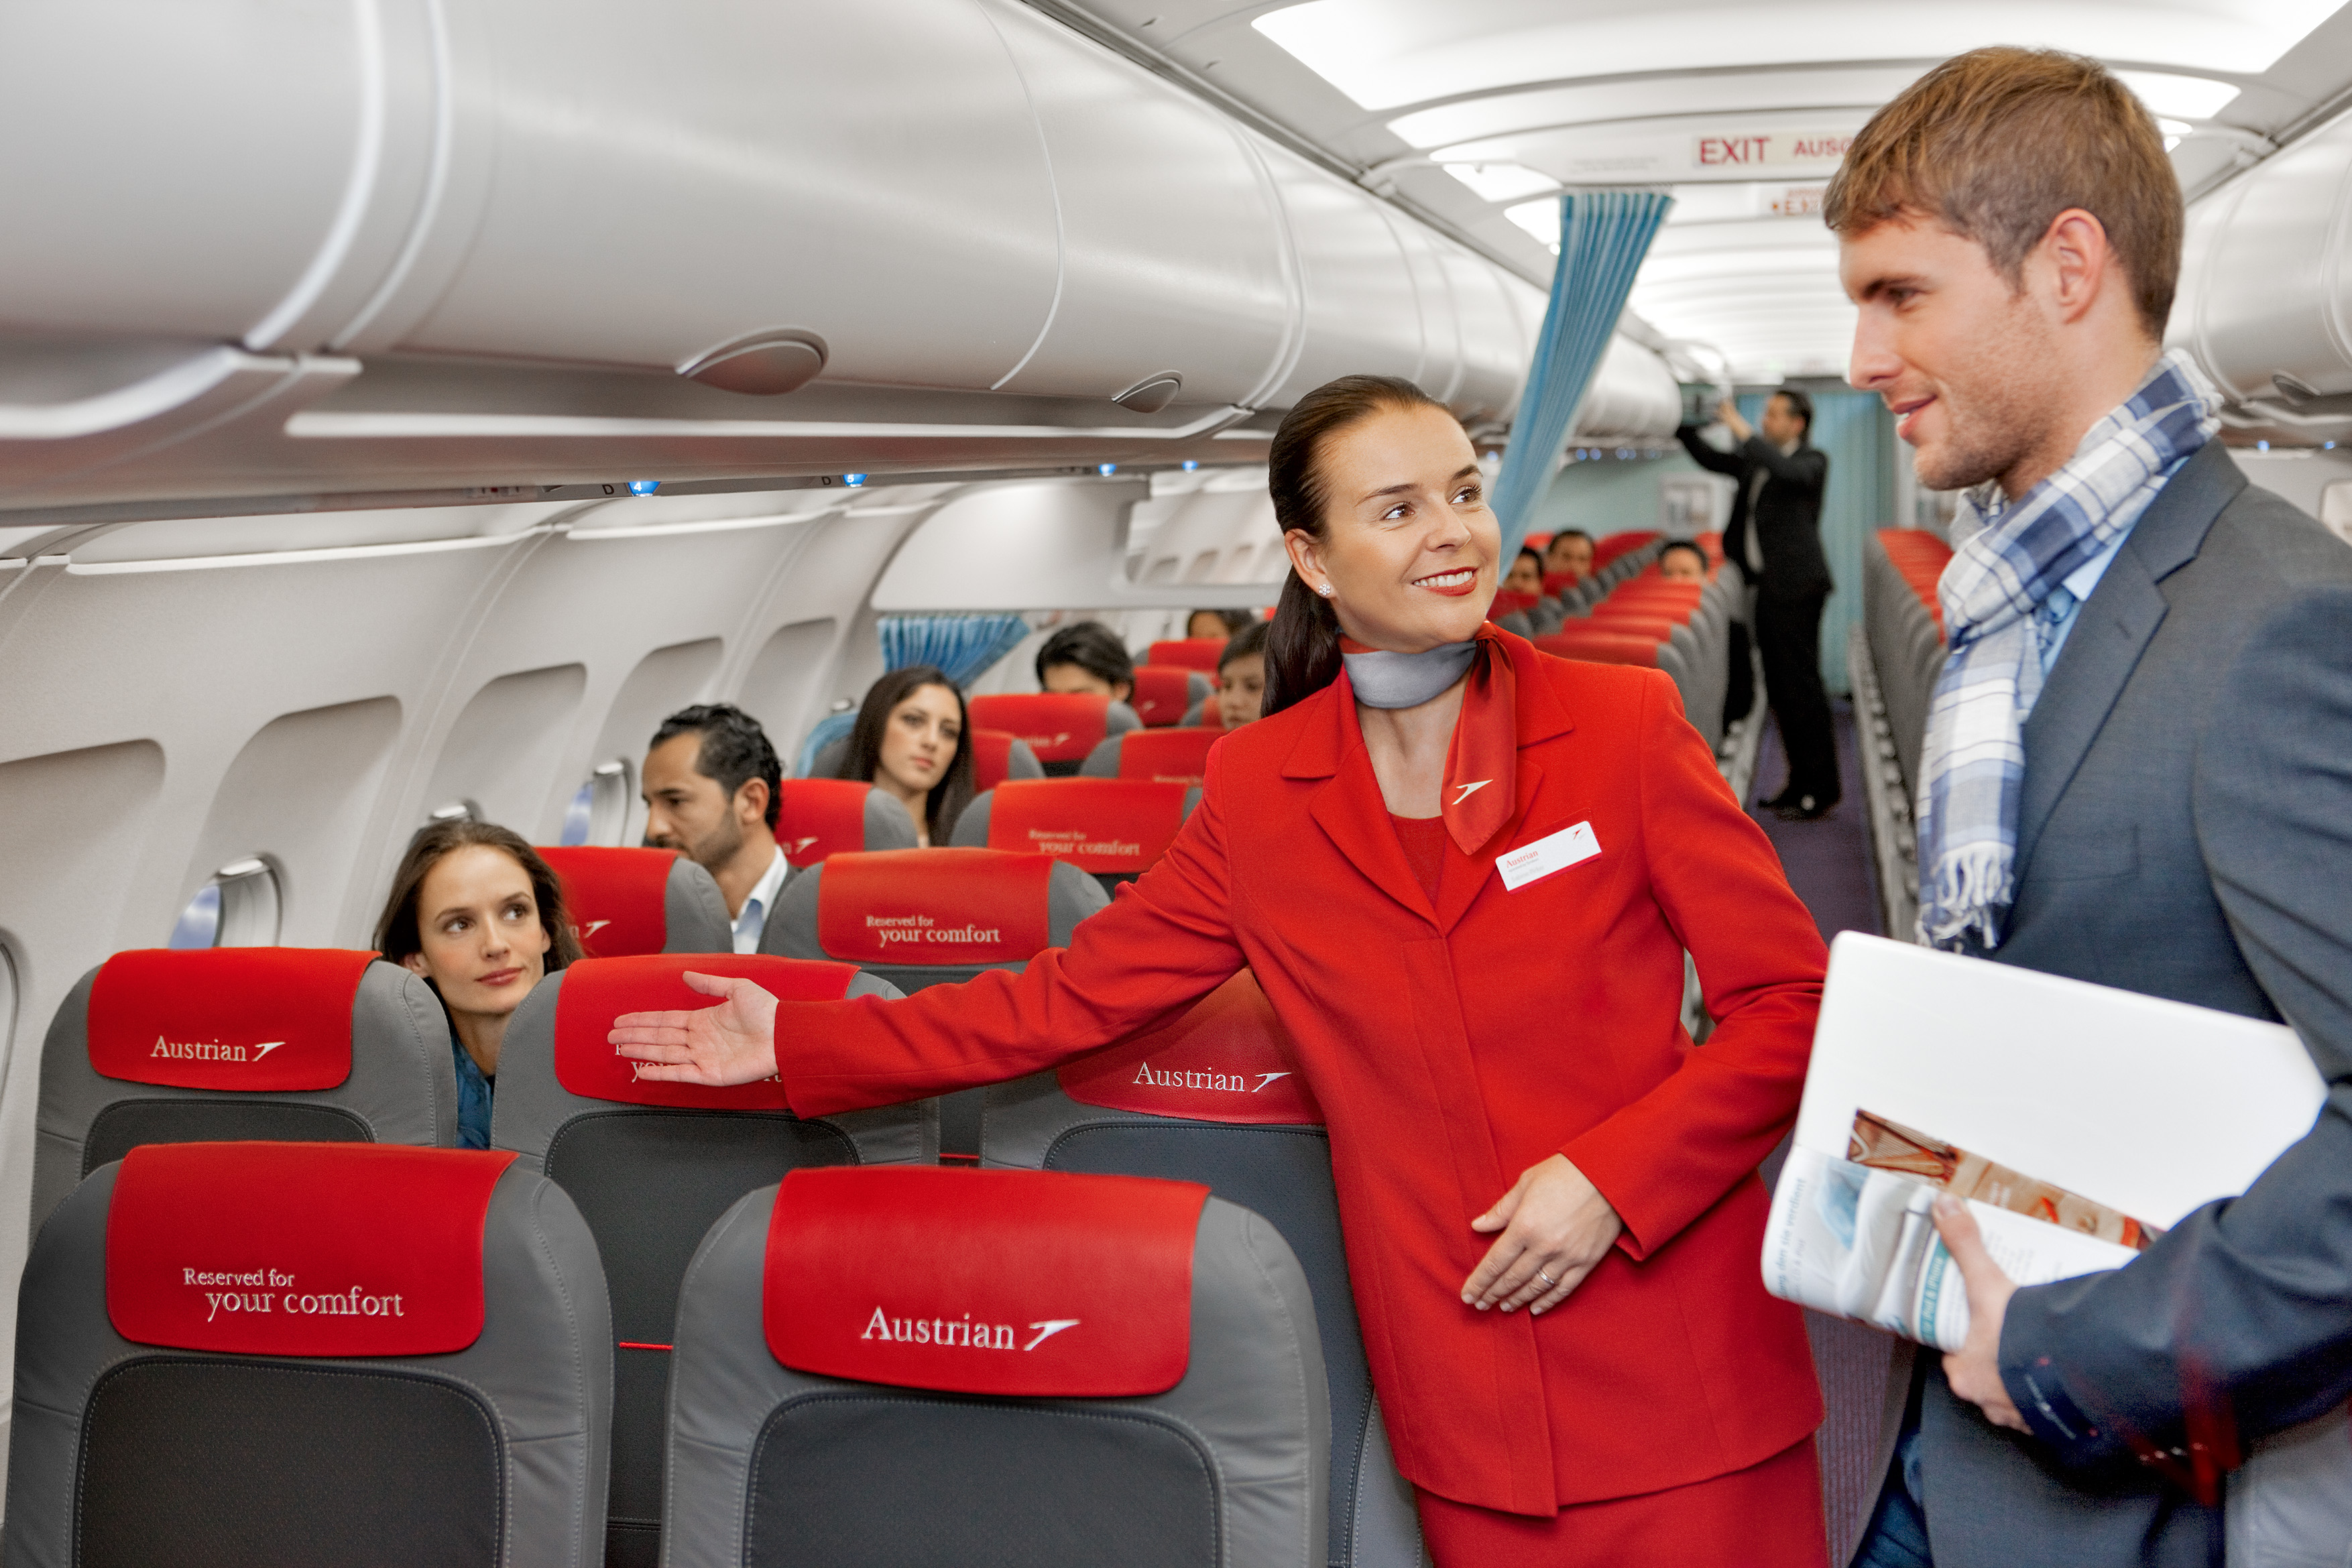 Pristina New York 705 € – Austrian Red Ticket